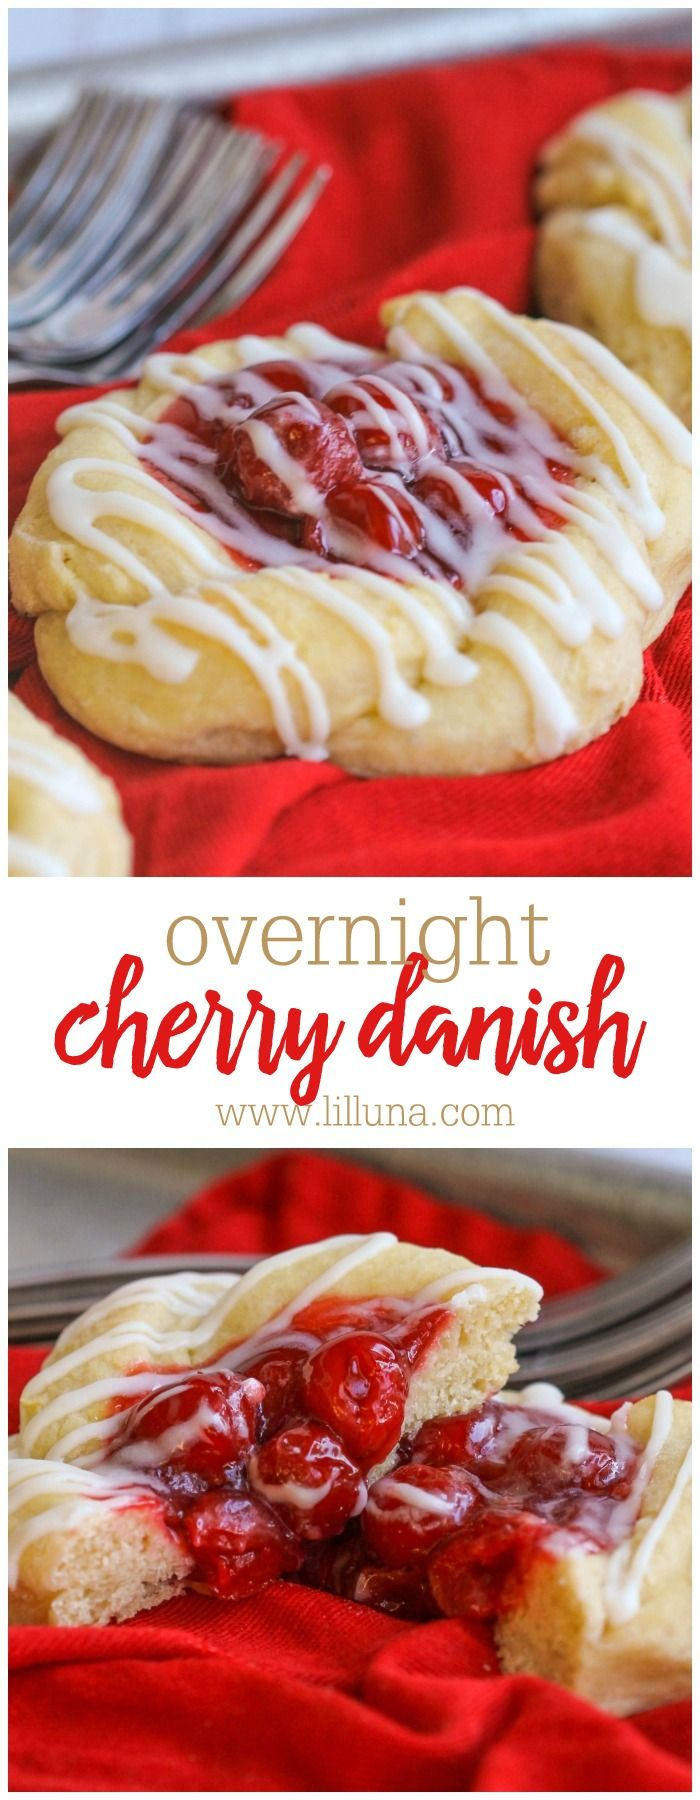 Overnight Cherry Danish - one of the yummiest and creamiest danish recipes you'll ever try!